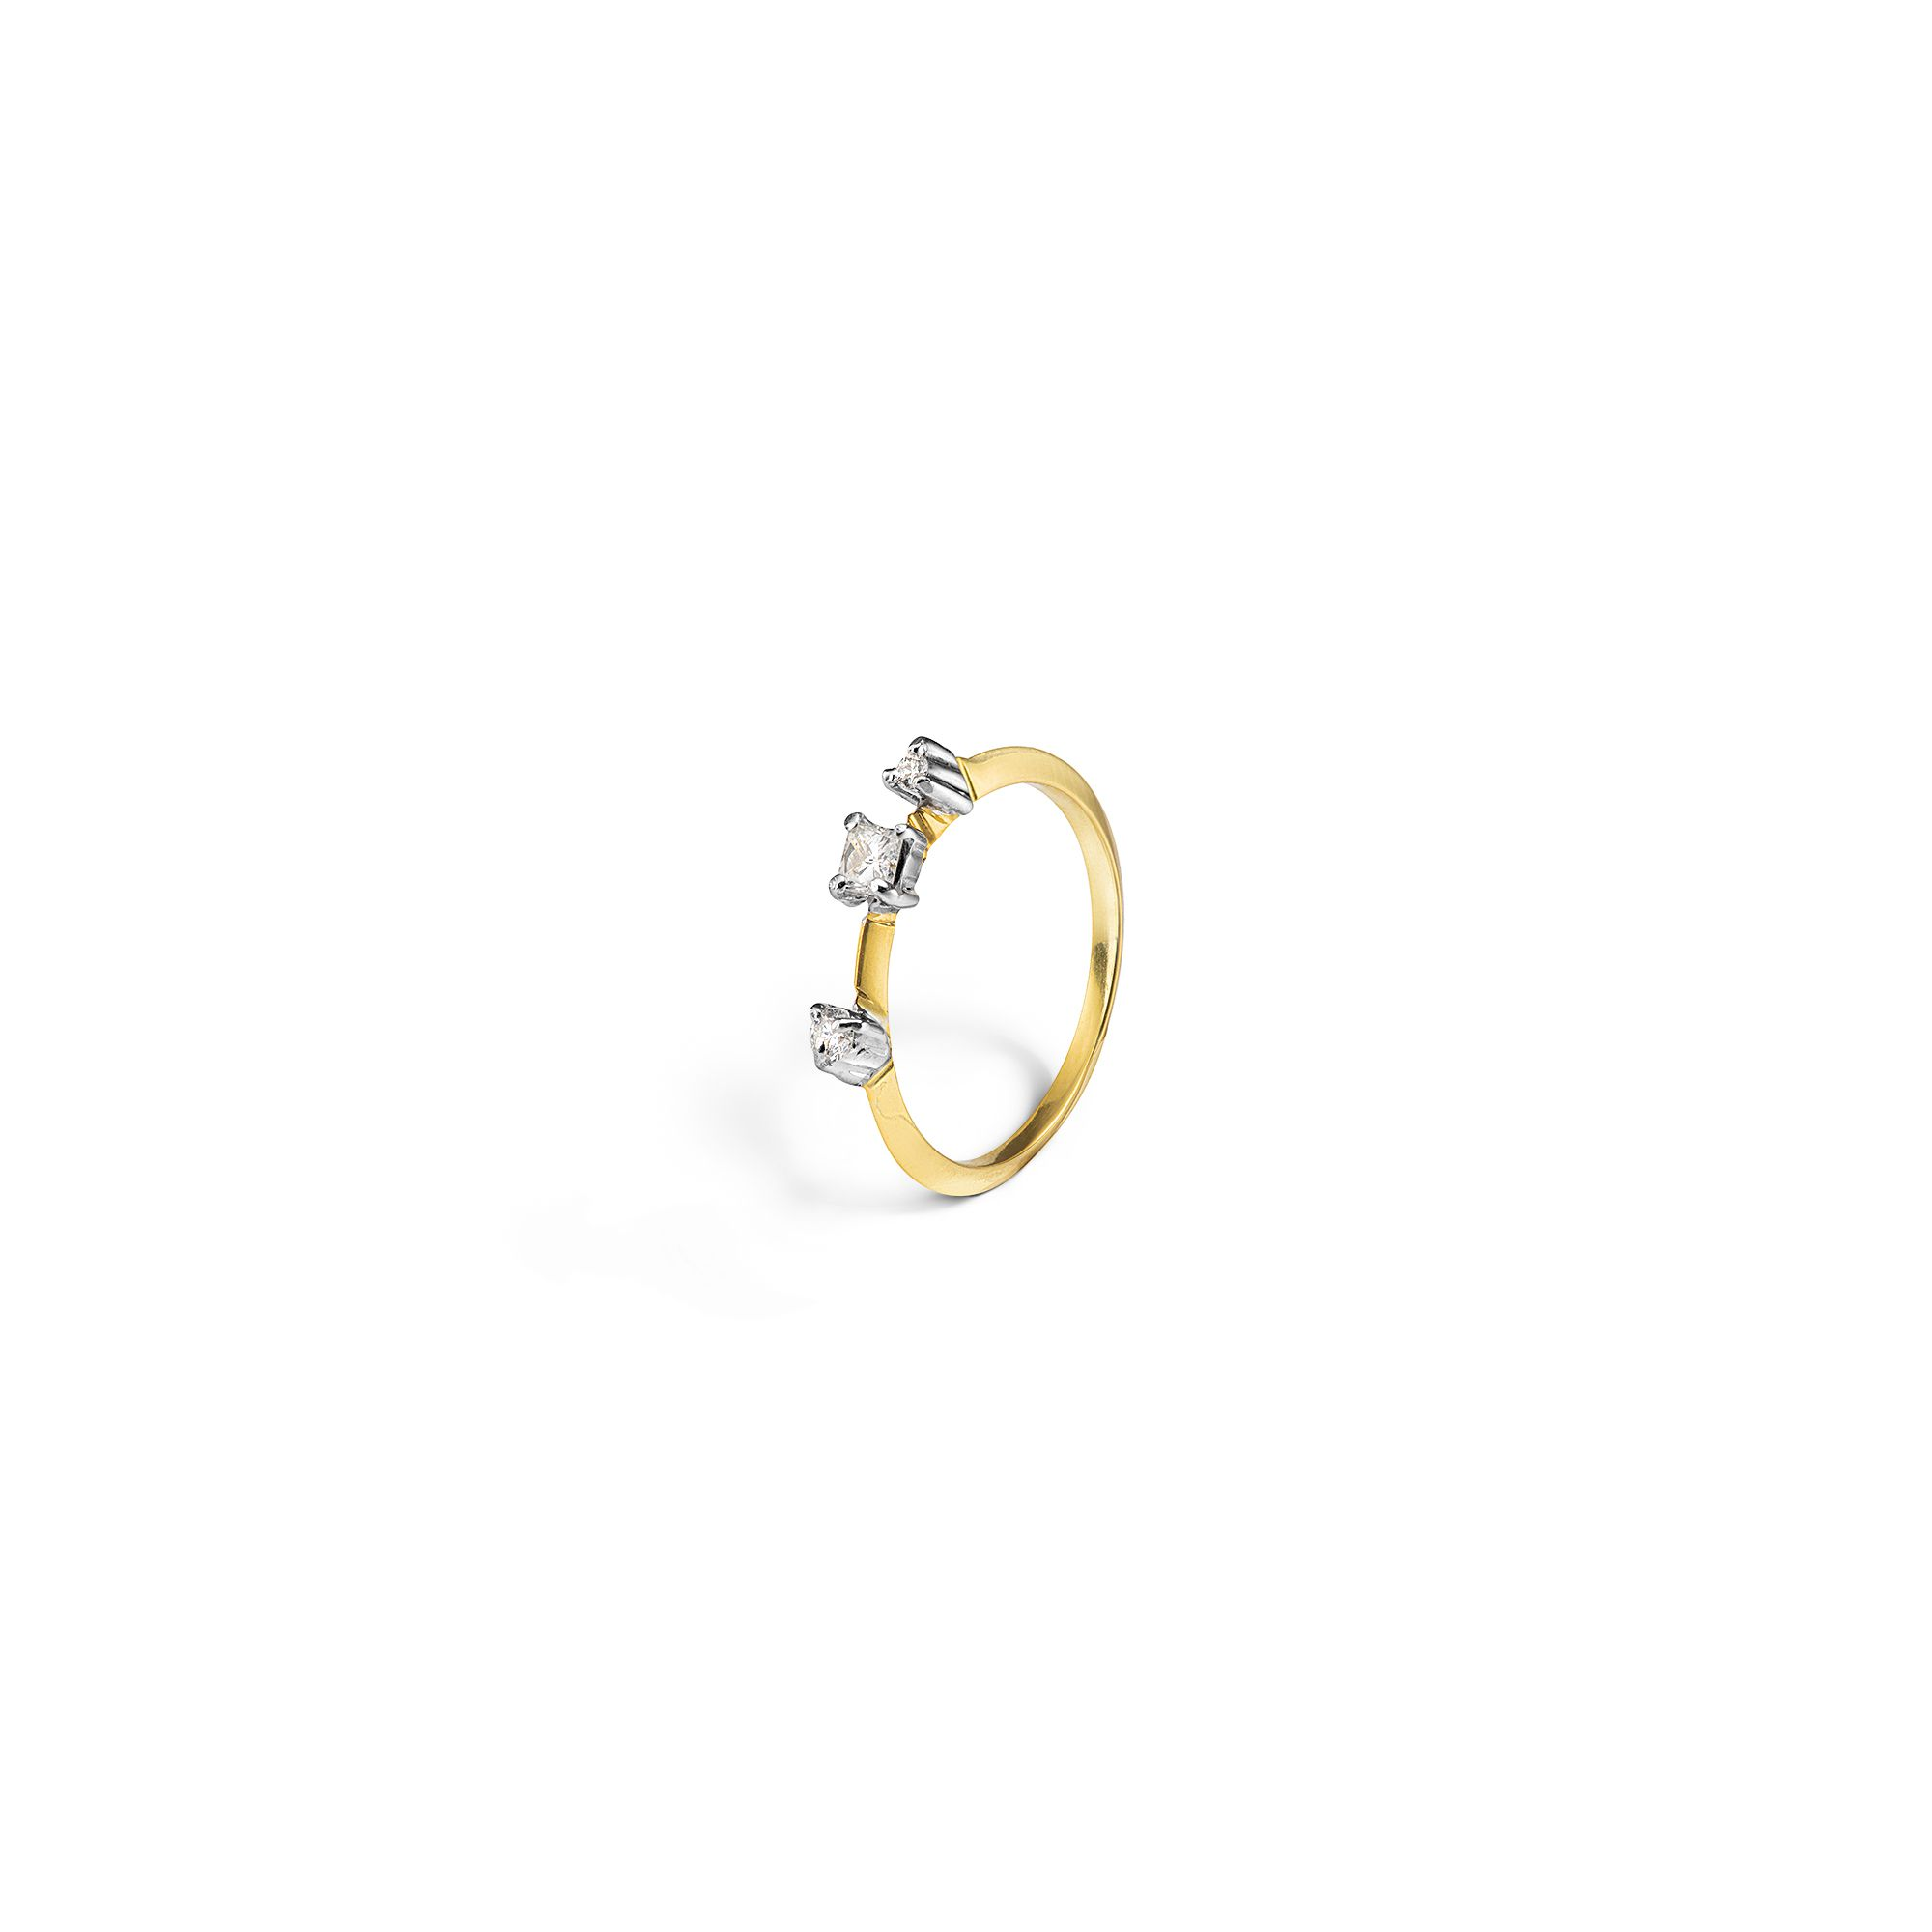 Yellow gold 'Balance' ring with princess Ring in yellow gold and white diamonds